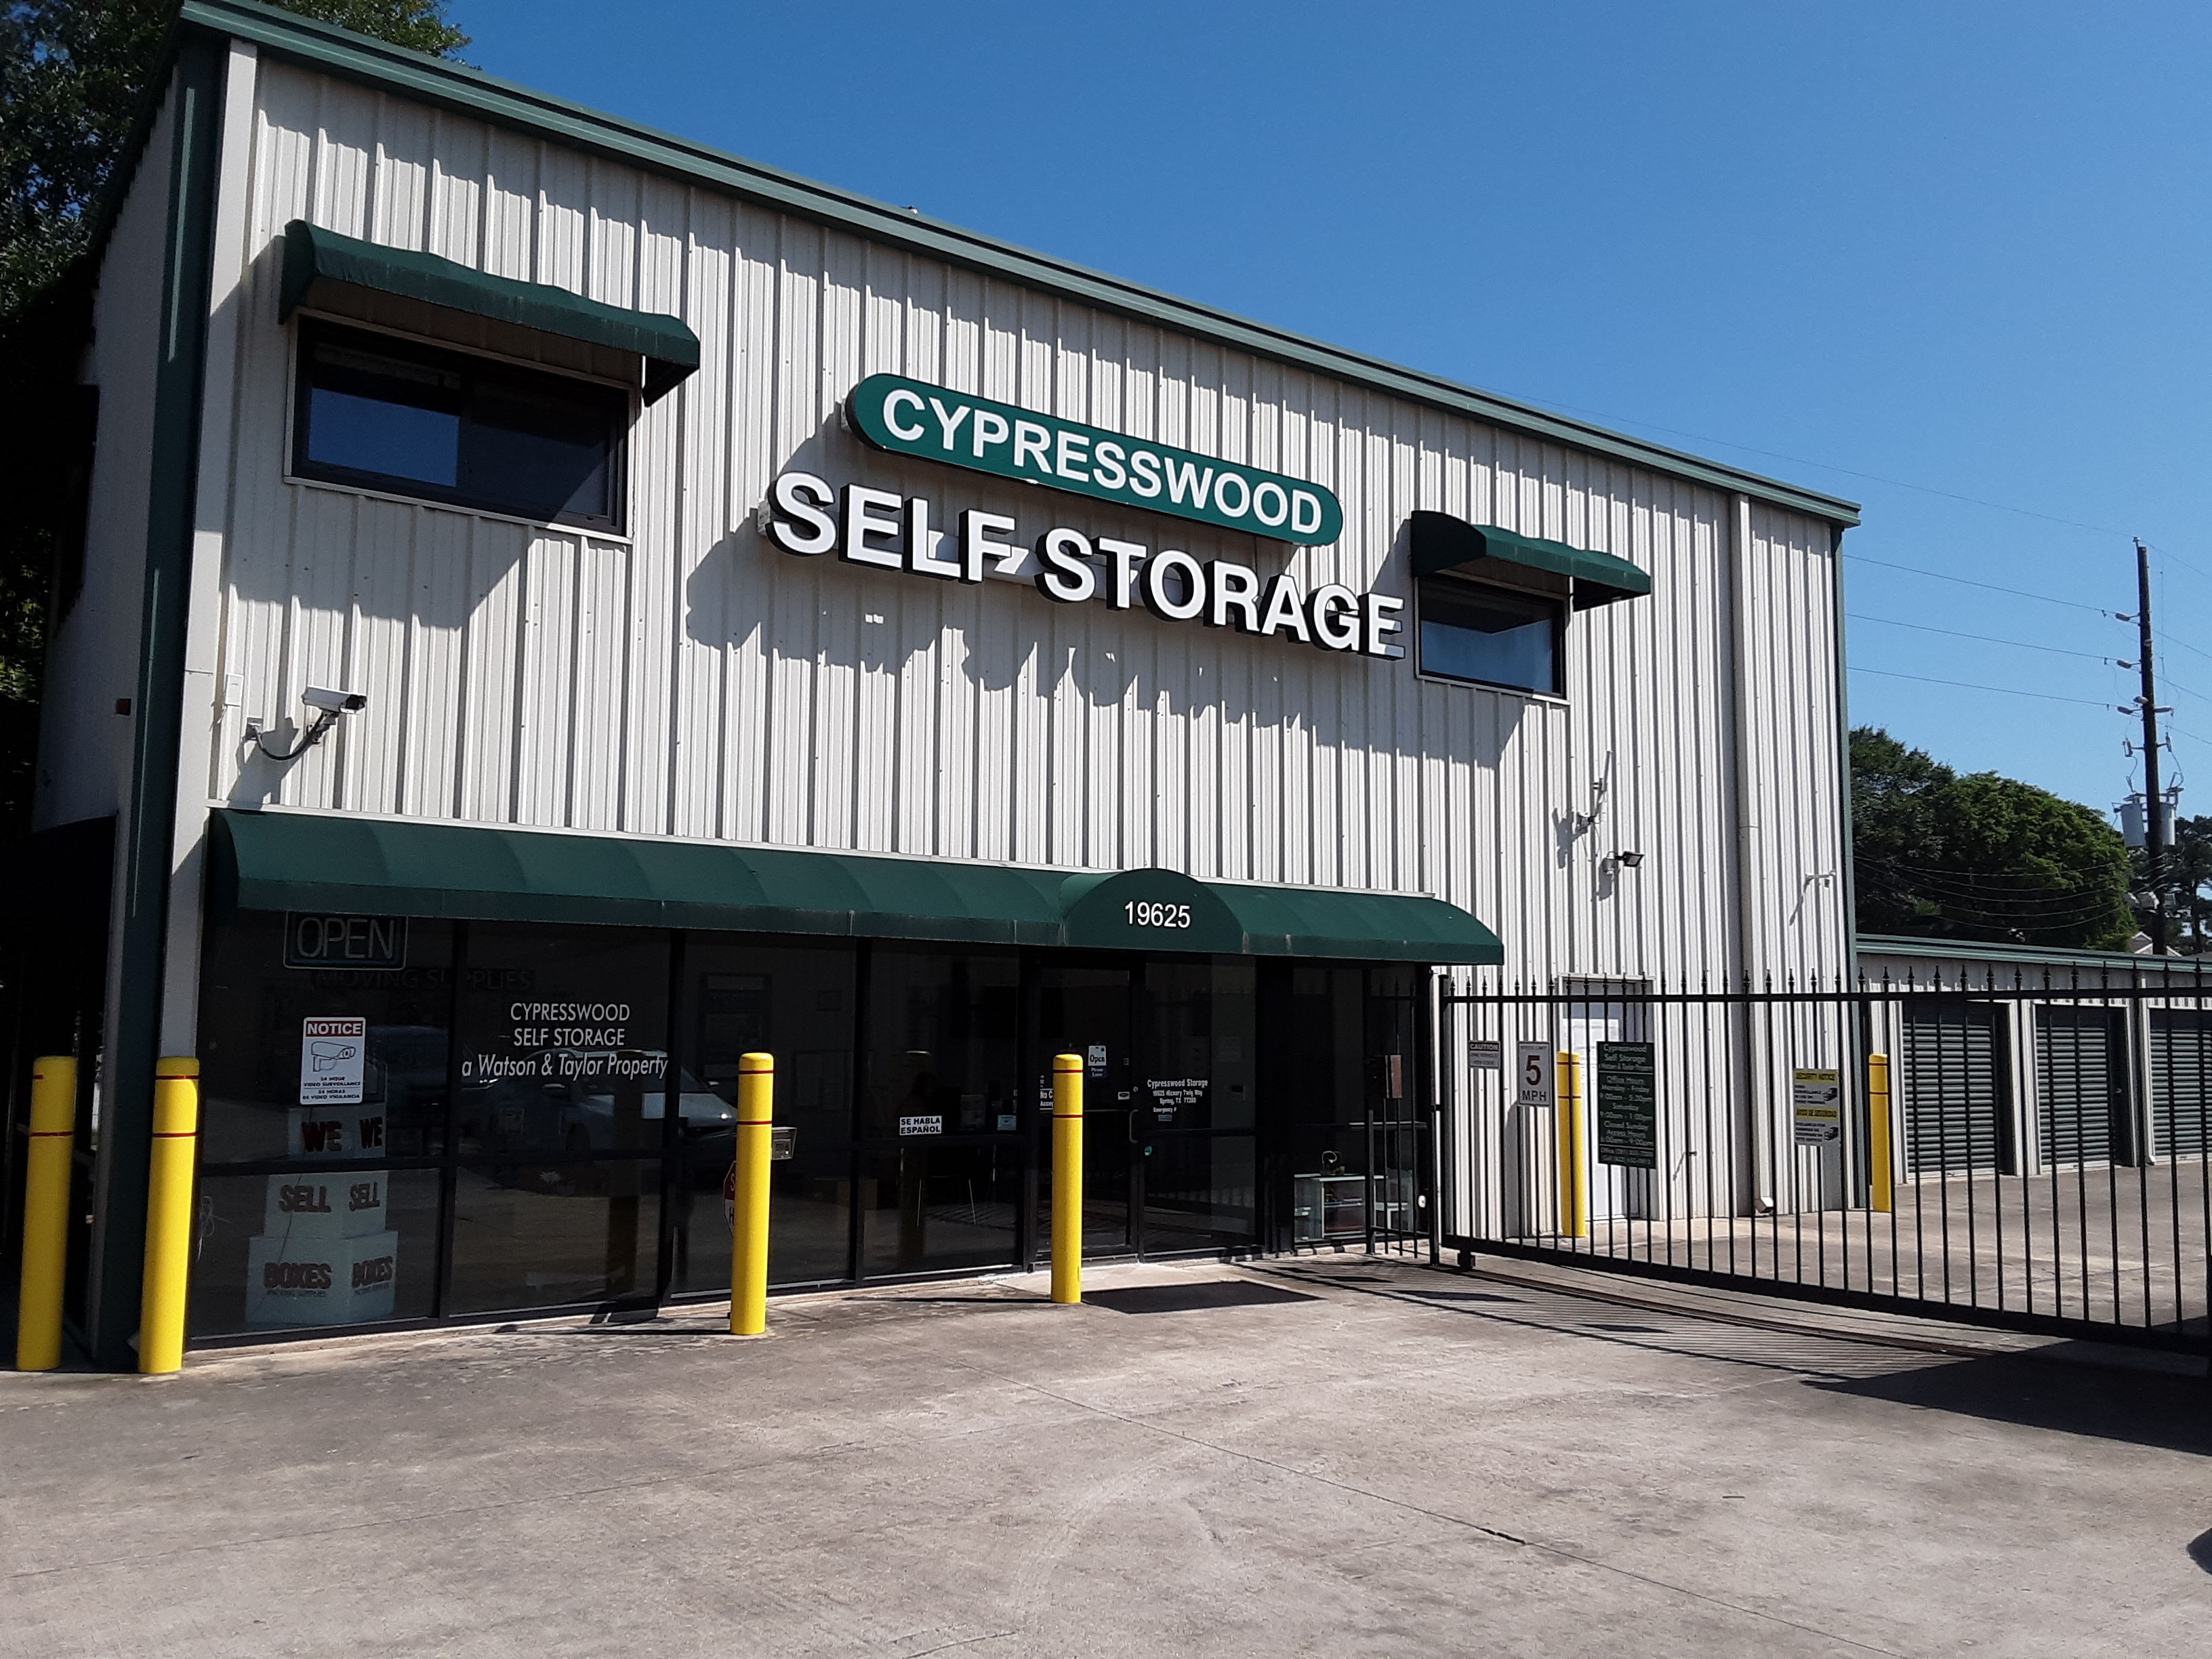 Cypresswood Self Storage - a Watson & Taylor Property